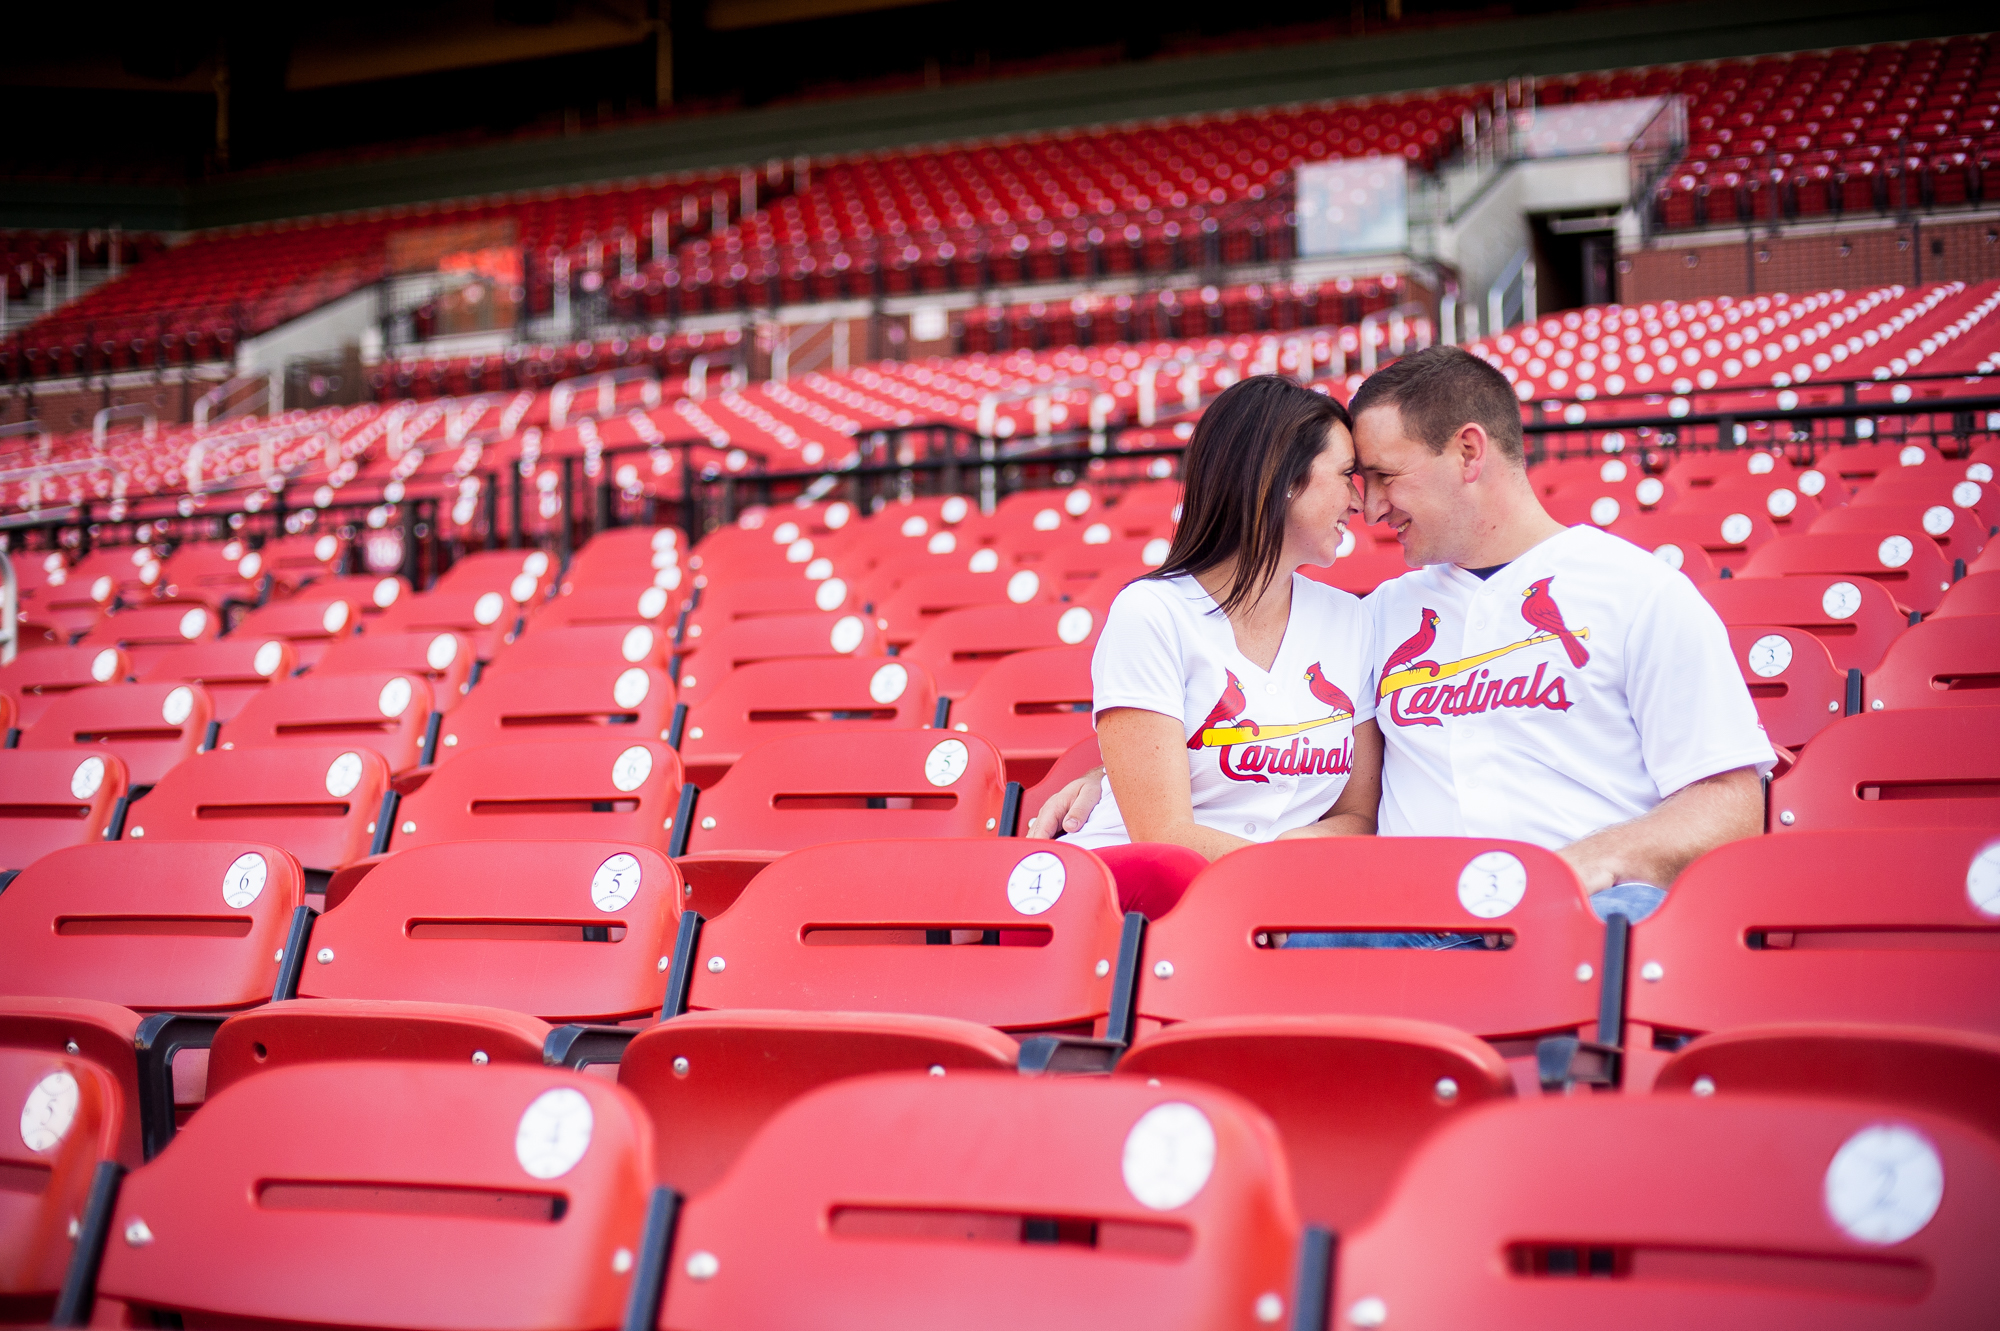 St. Louis Cardinals fans engagement photos